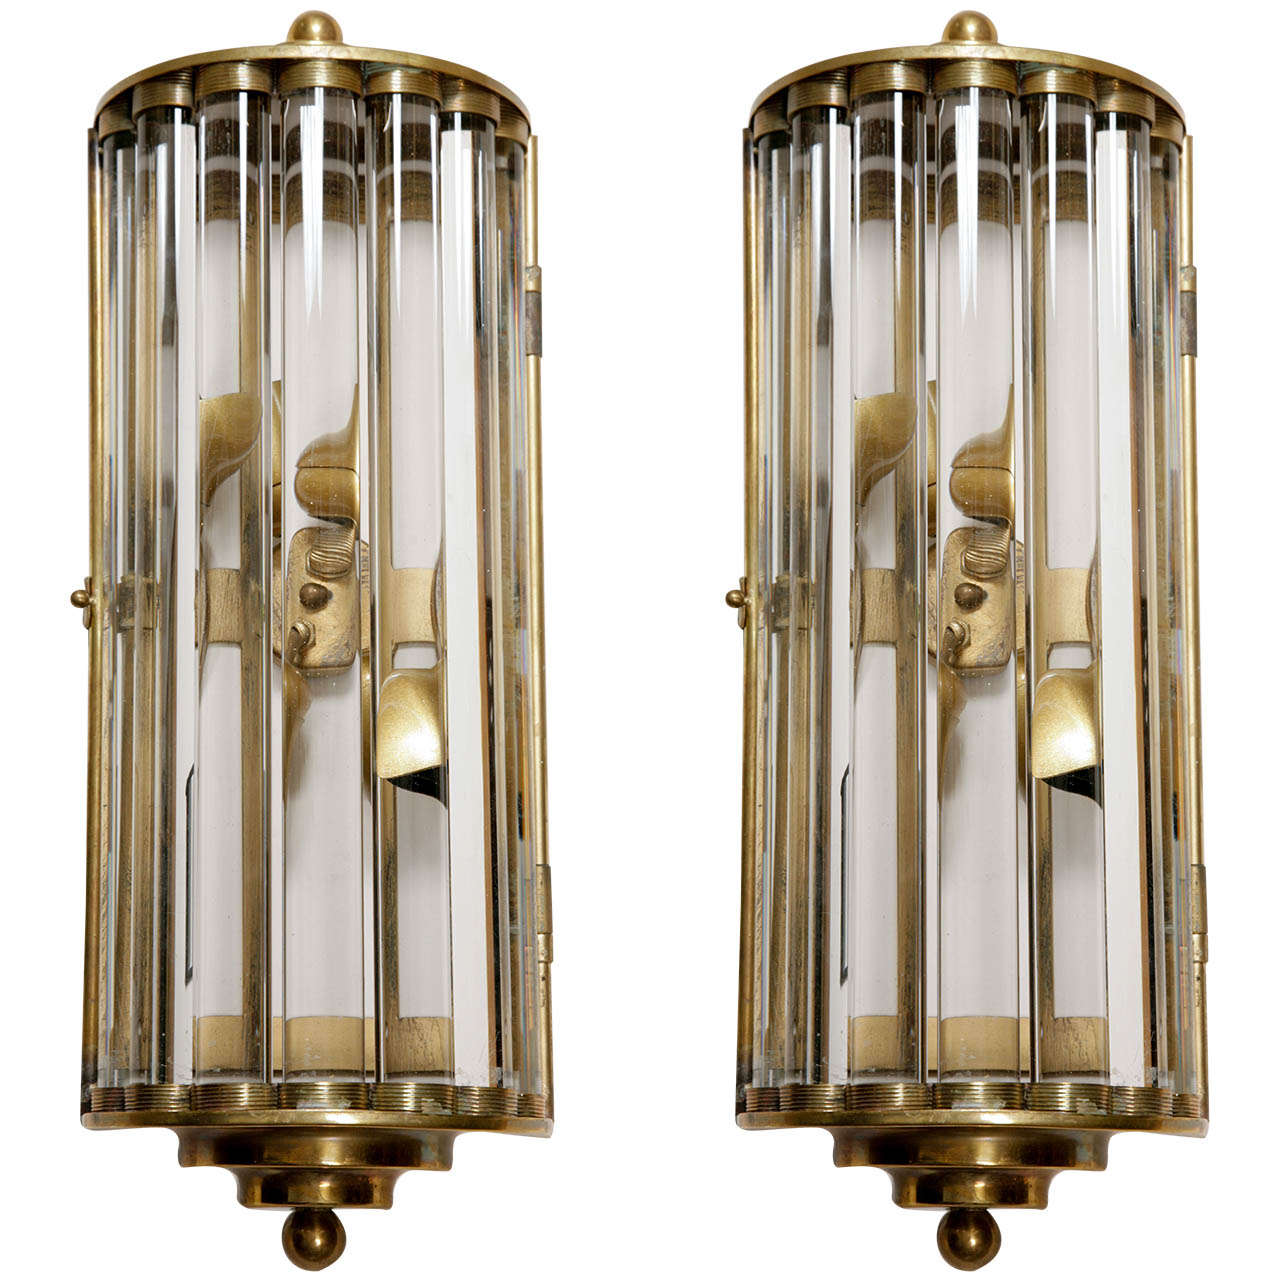 Italian Crystal Wall Lights : Italian brass and crystal bar wall lights at 1stdibs